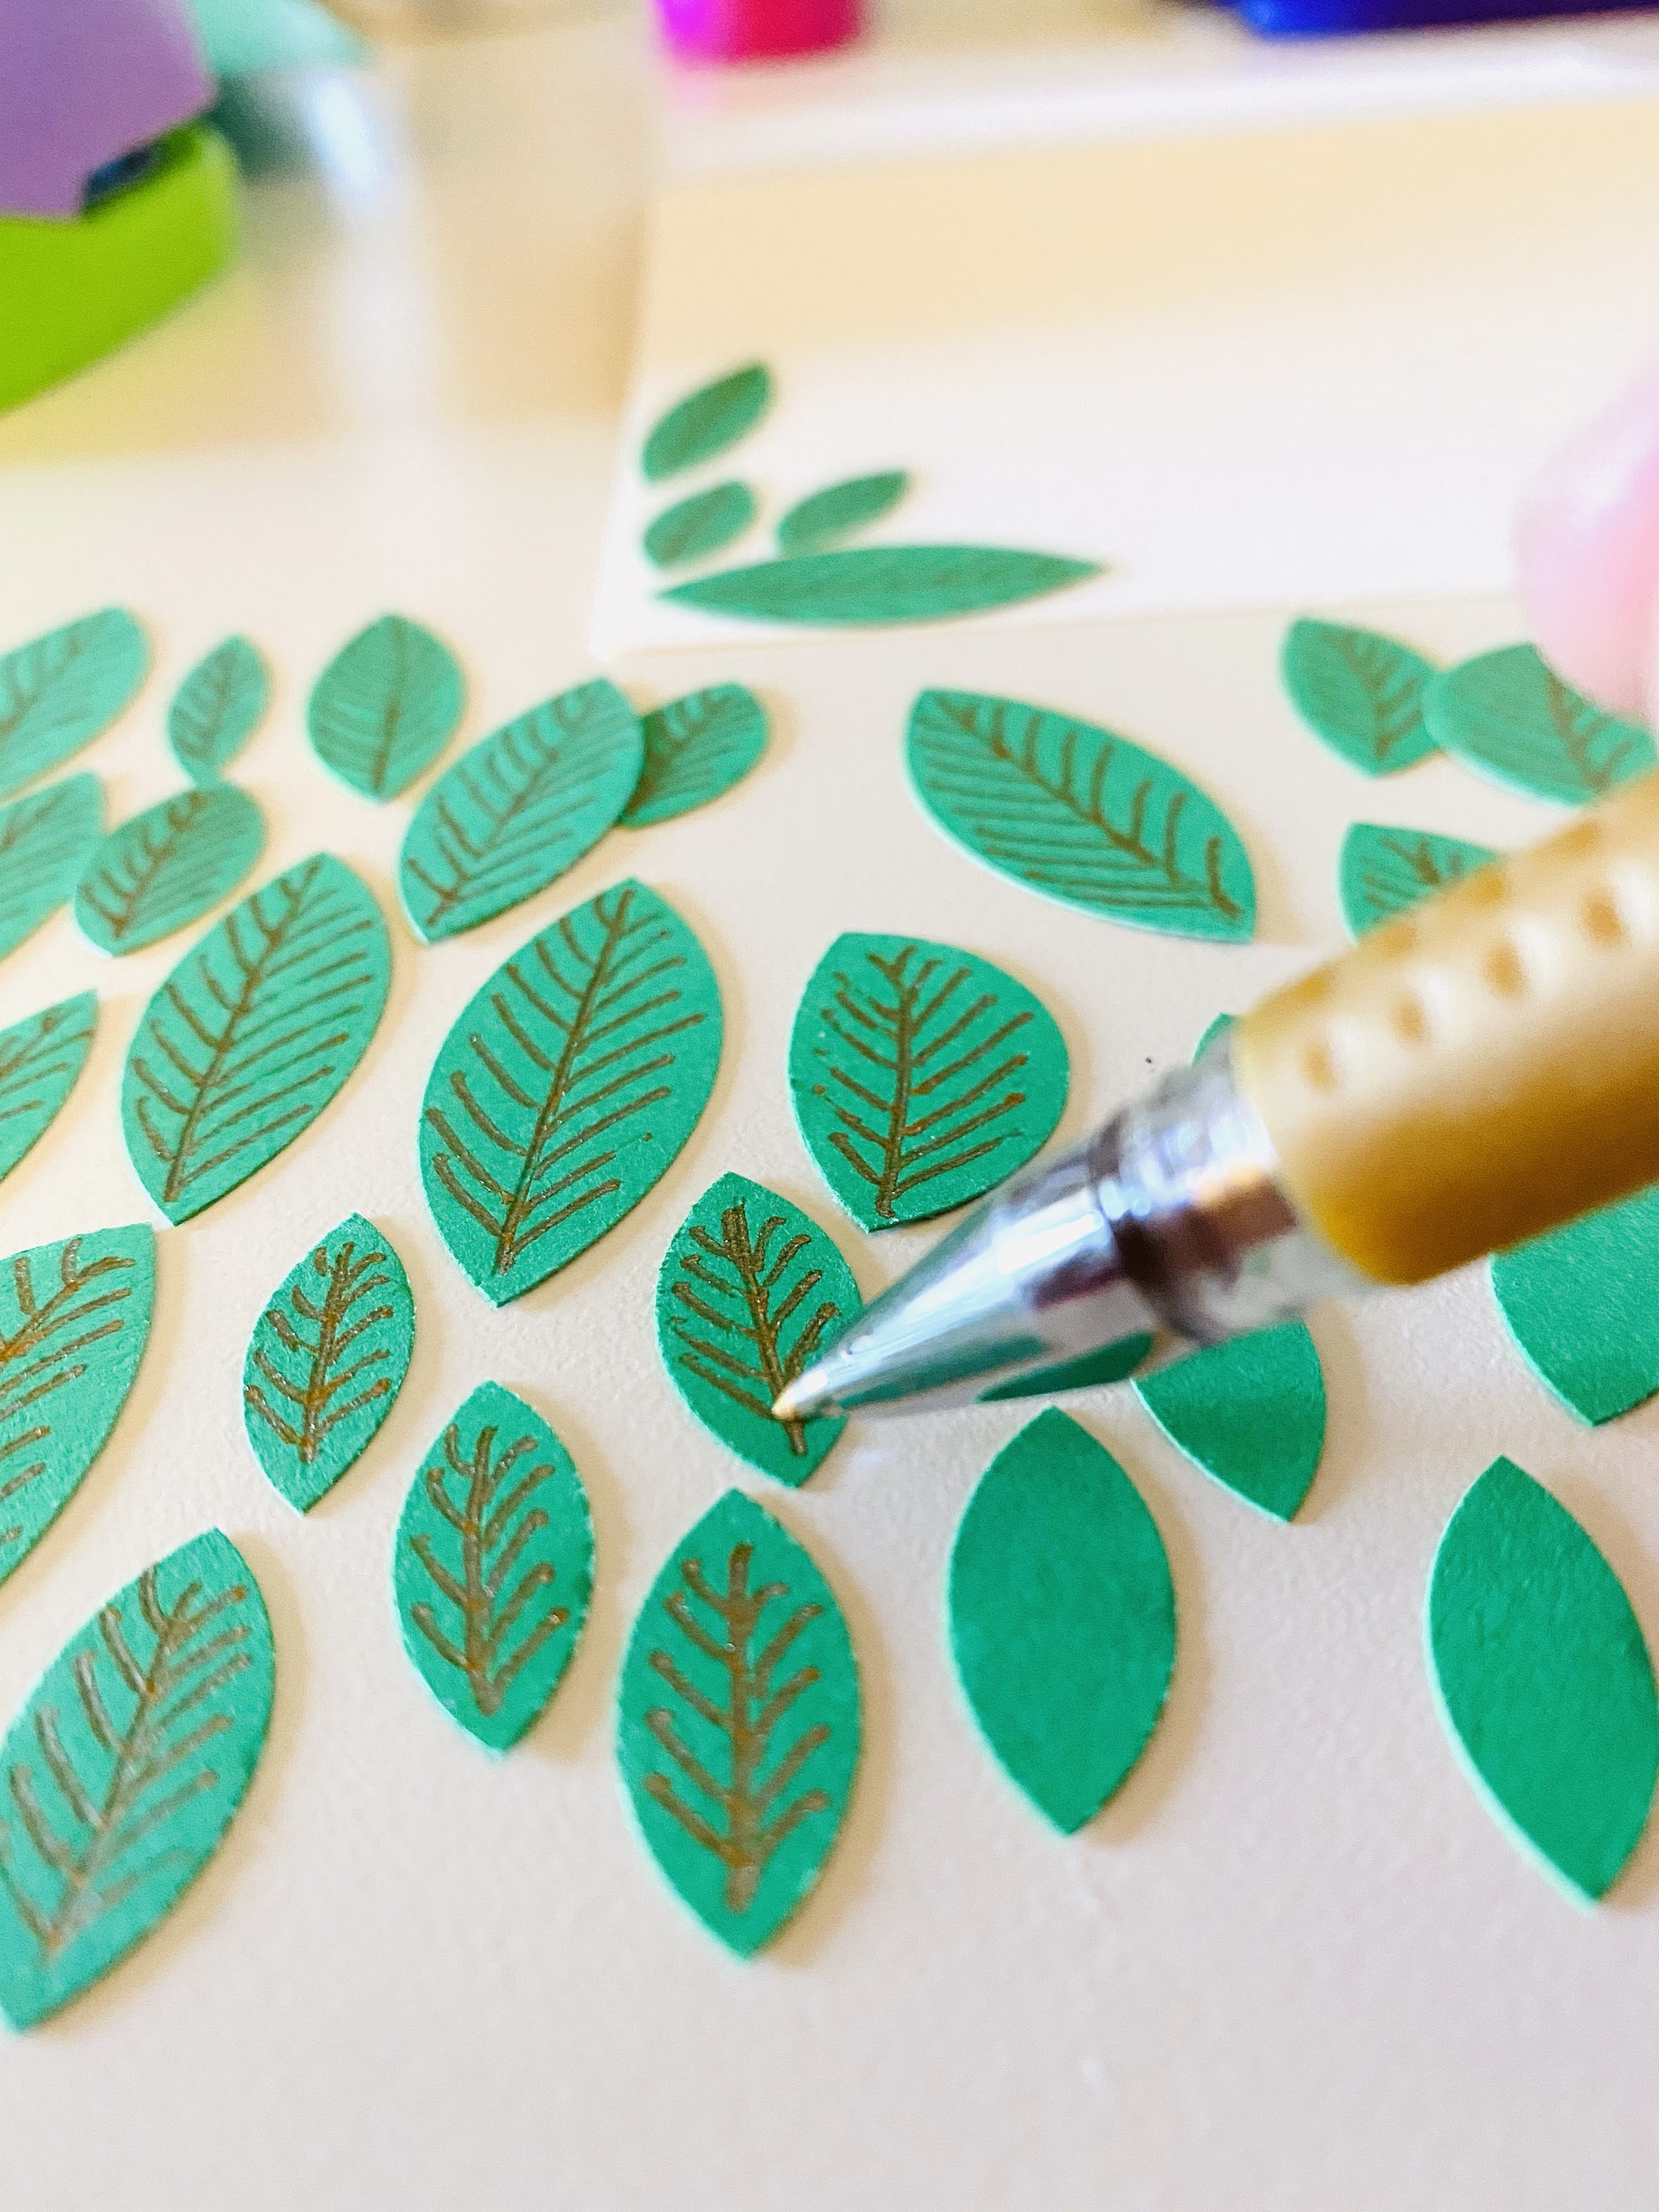 Drawing veins on leaves card making green cardstock and gold gel pen